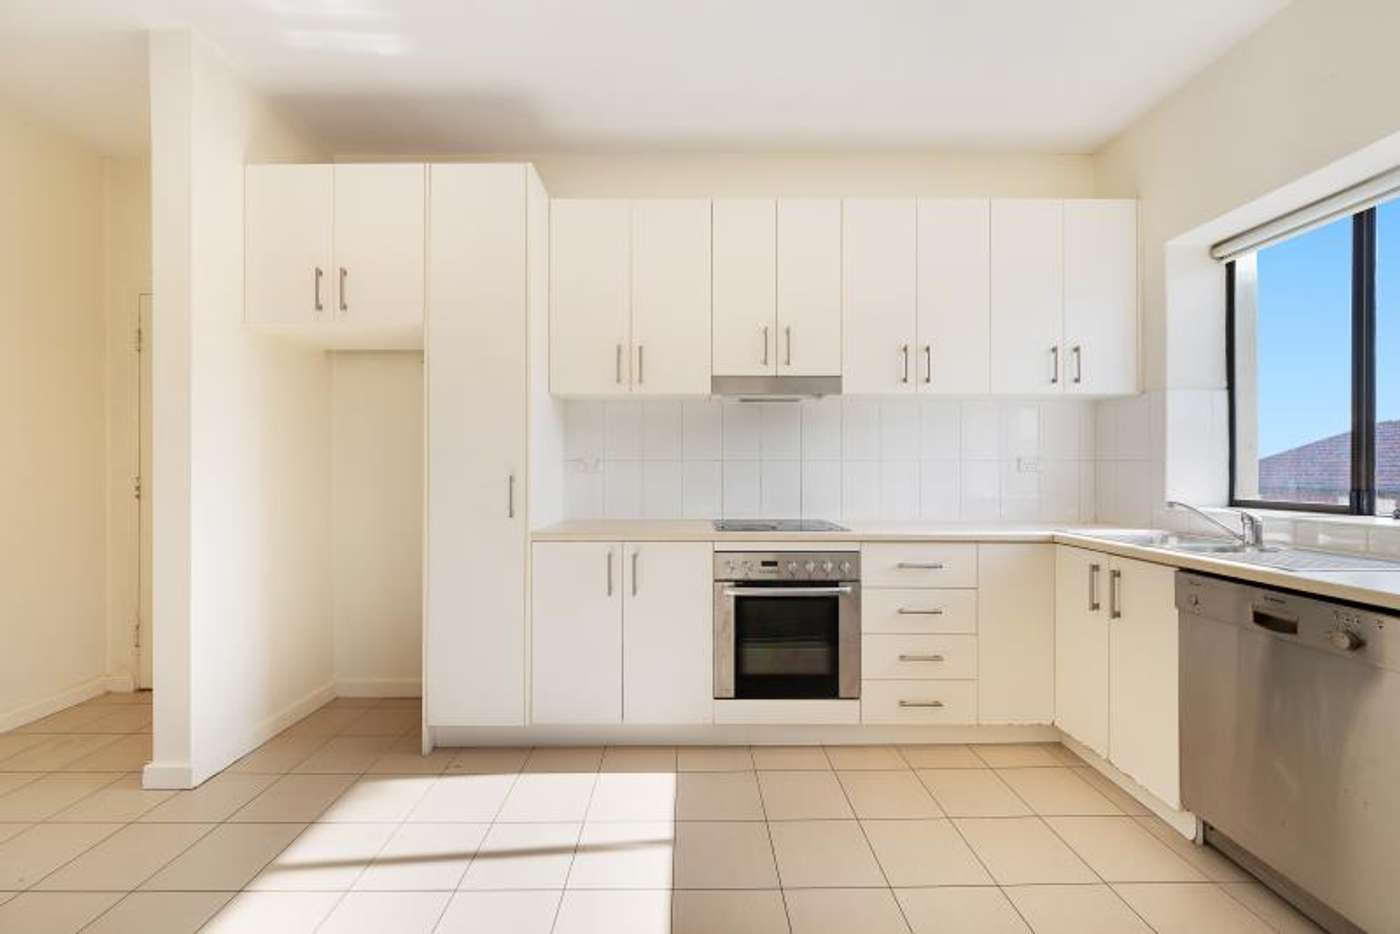 Main view of Homely apartment listing, 15/70 Arthur Street, Randwick NSW 2031